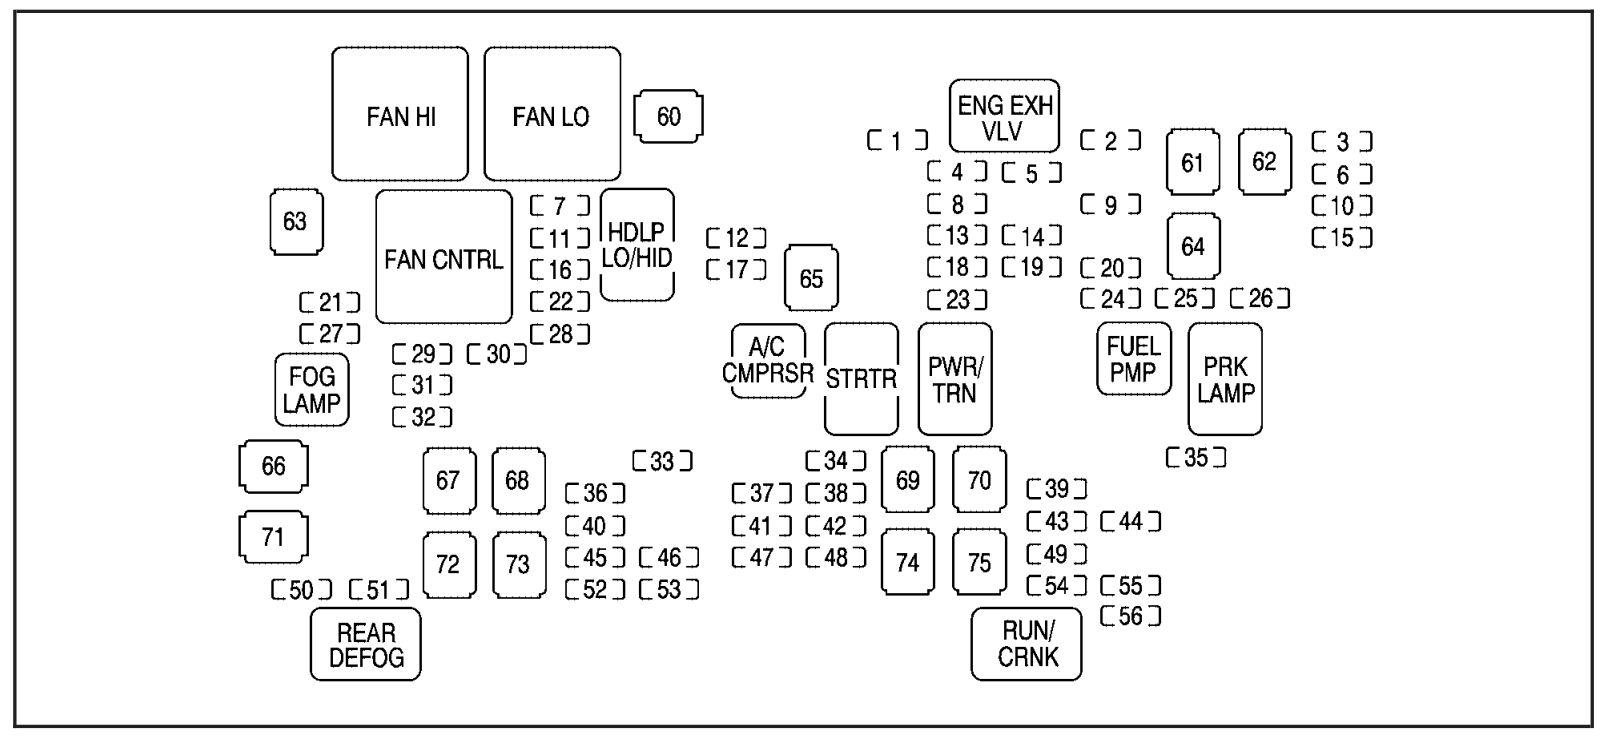 2007 Chevy Avalanche Fuse Box Diagram Great Design Of Wiring E38 Chevrolet Auto Genius 2003 Tahoe 2005